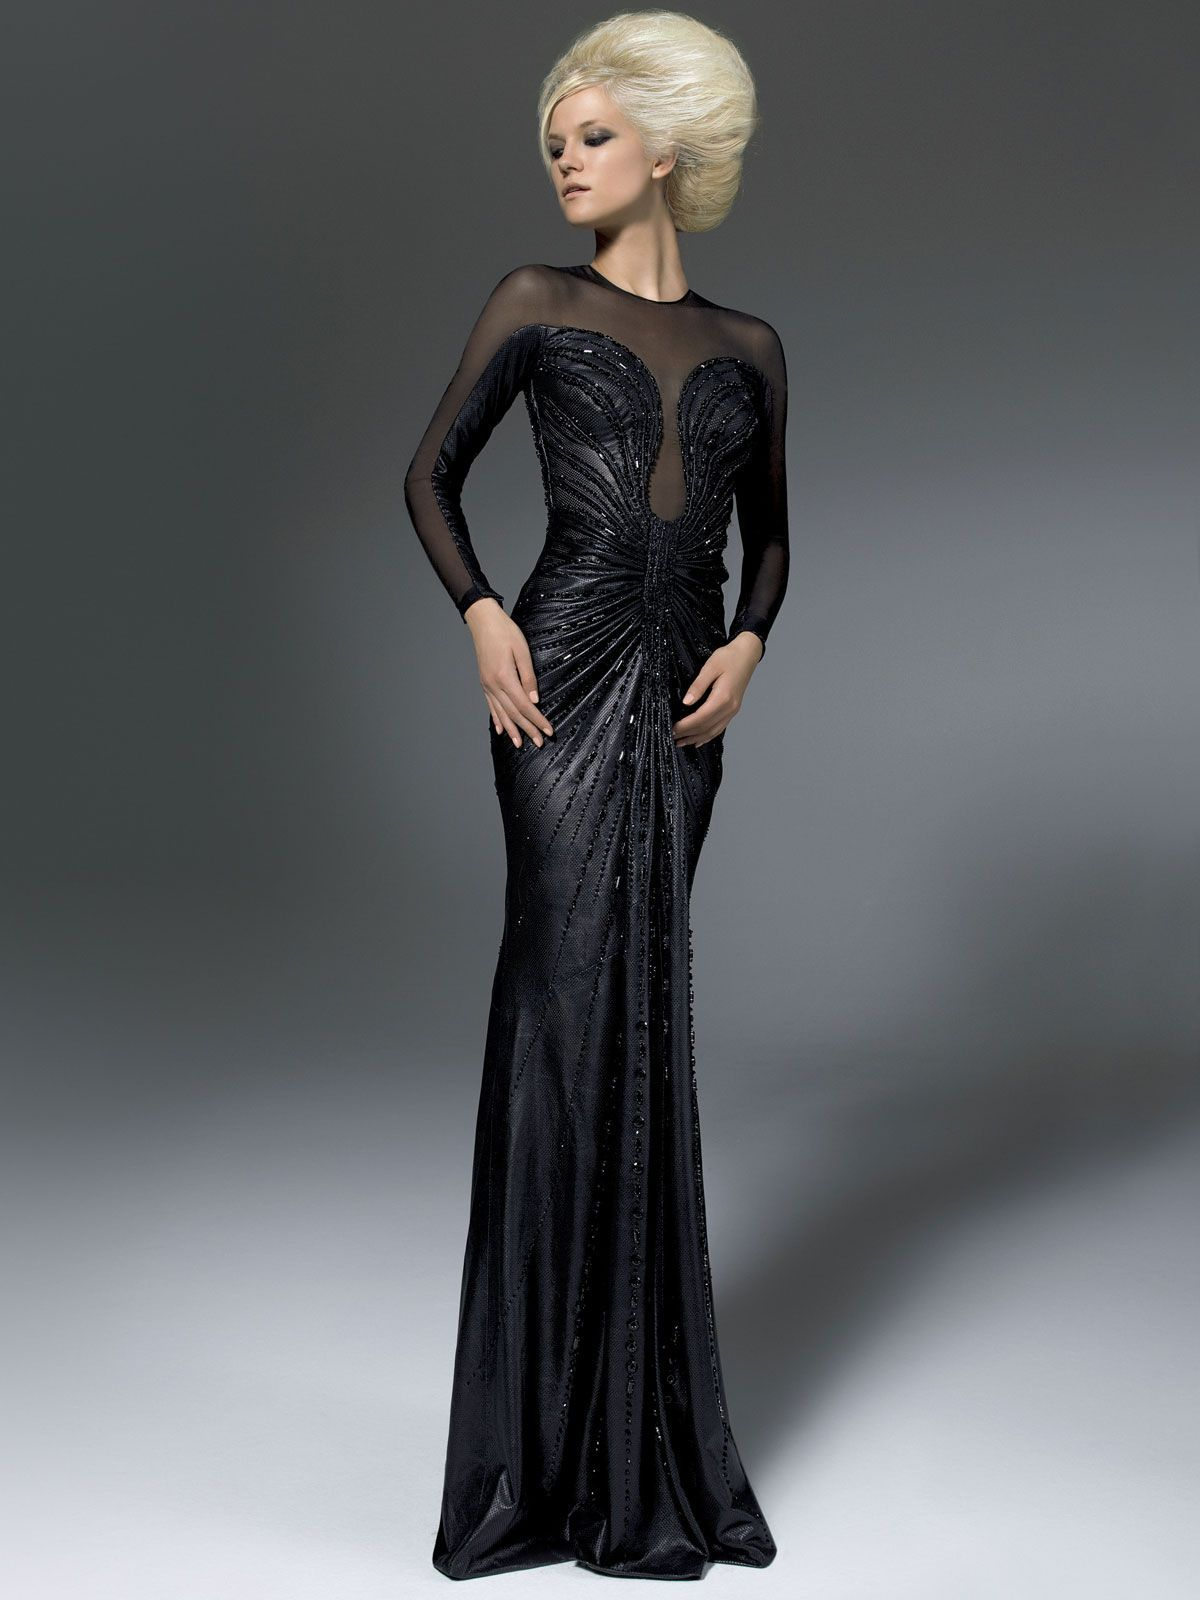 Versace wedding dress  Le LaidThe Ugly Very Versace  Gowns  Pinterest  Versace Gowns